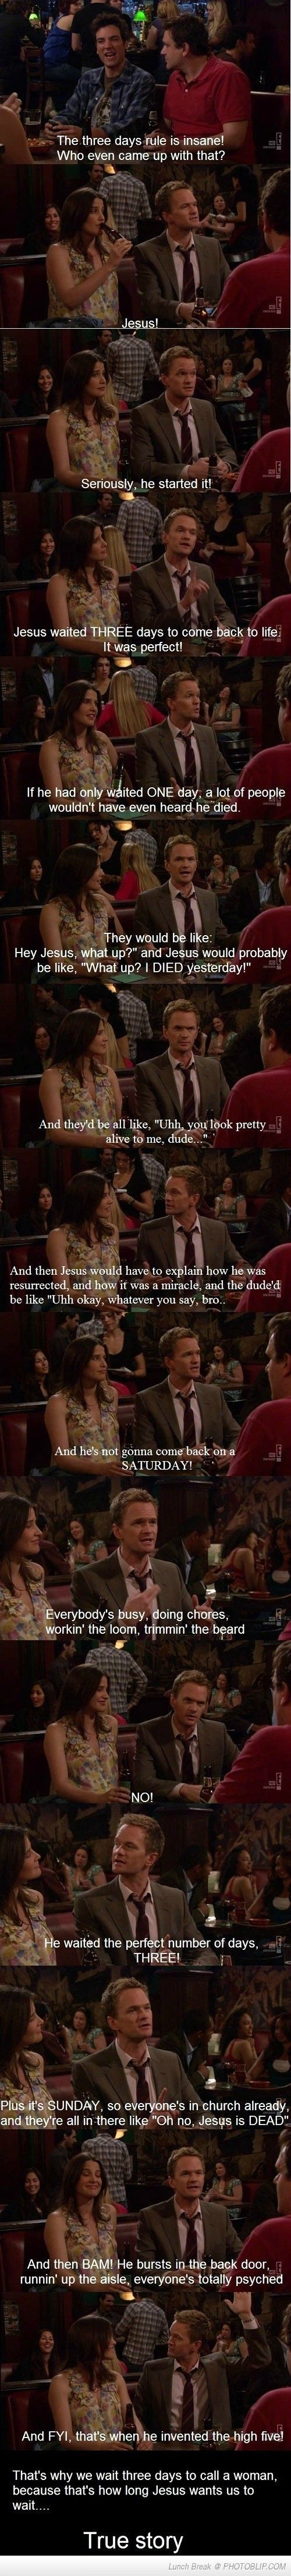 The three day rule. HIMYM...Barney is Hilarious. One of the best characters on TV!